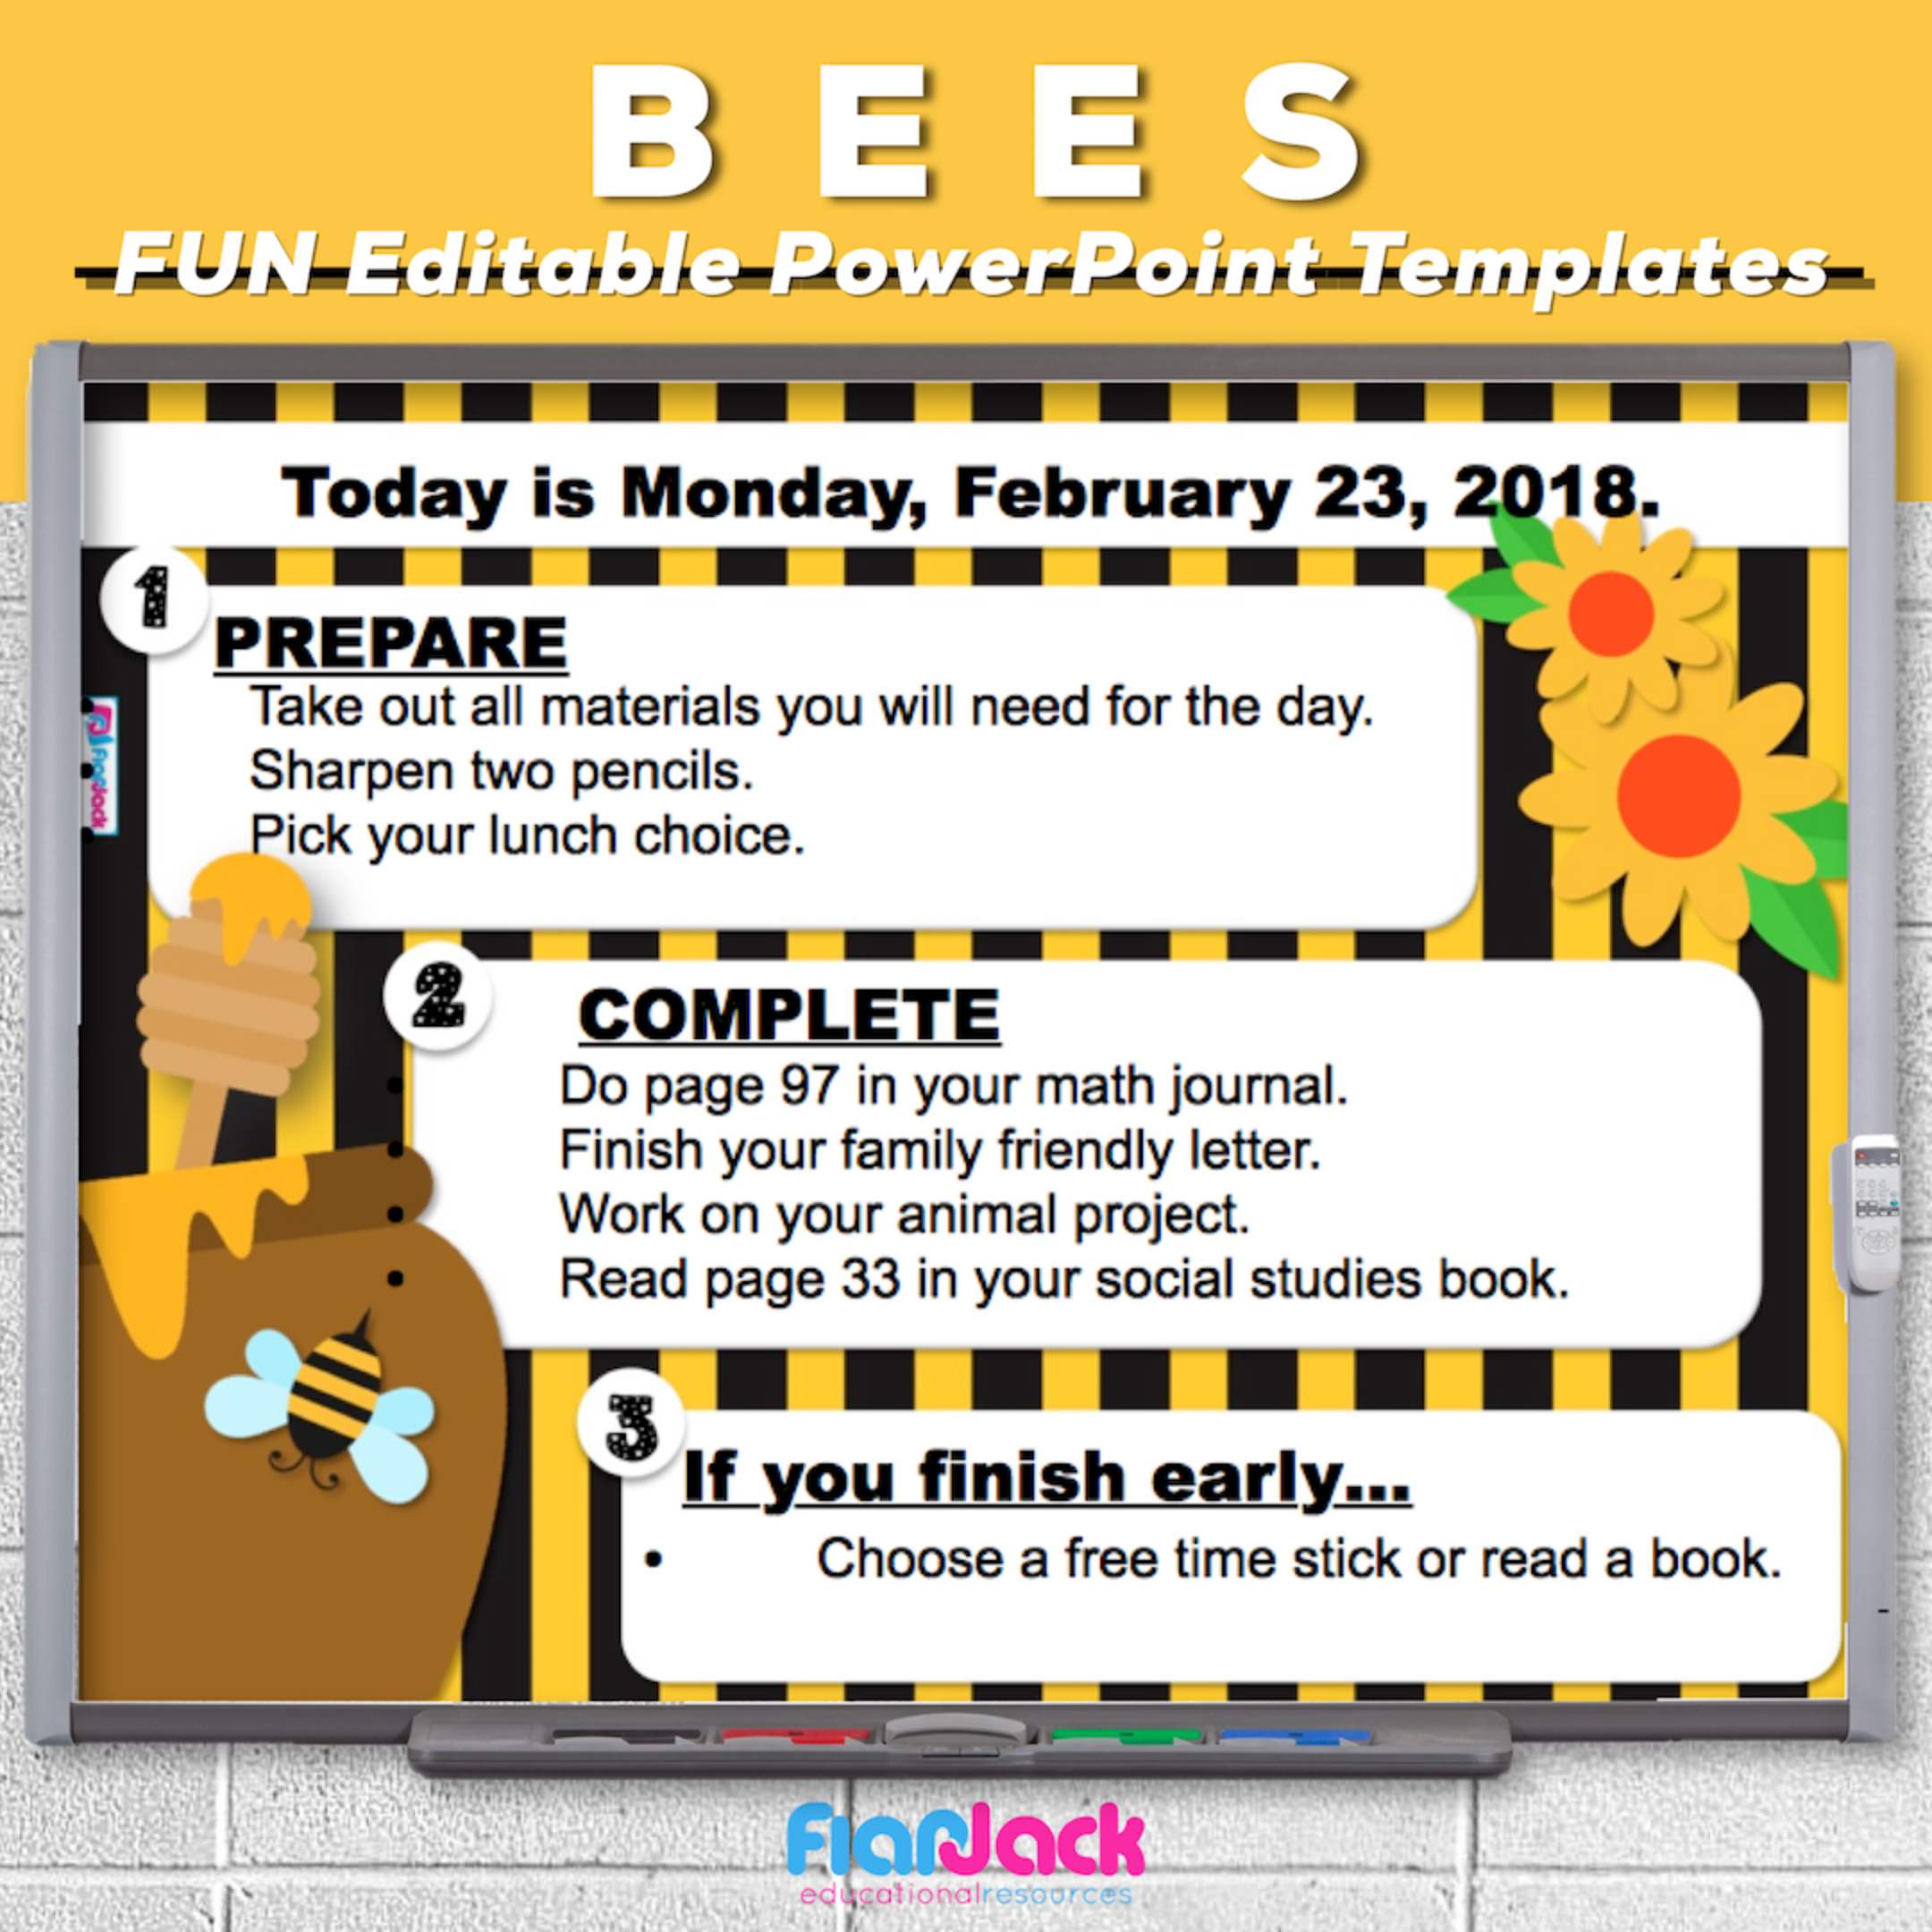 Bees Editable PowerPoint Templates